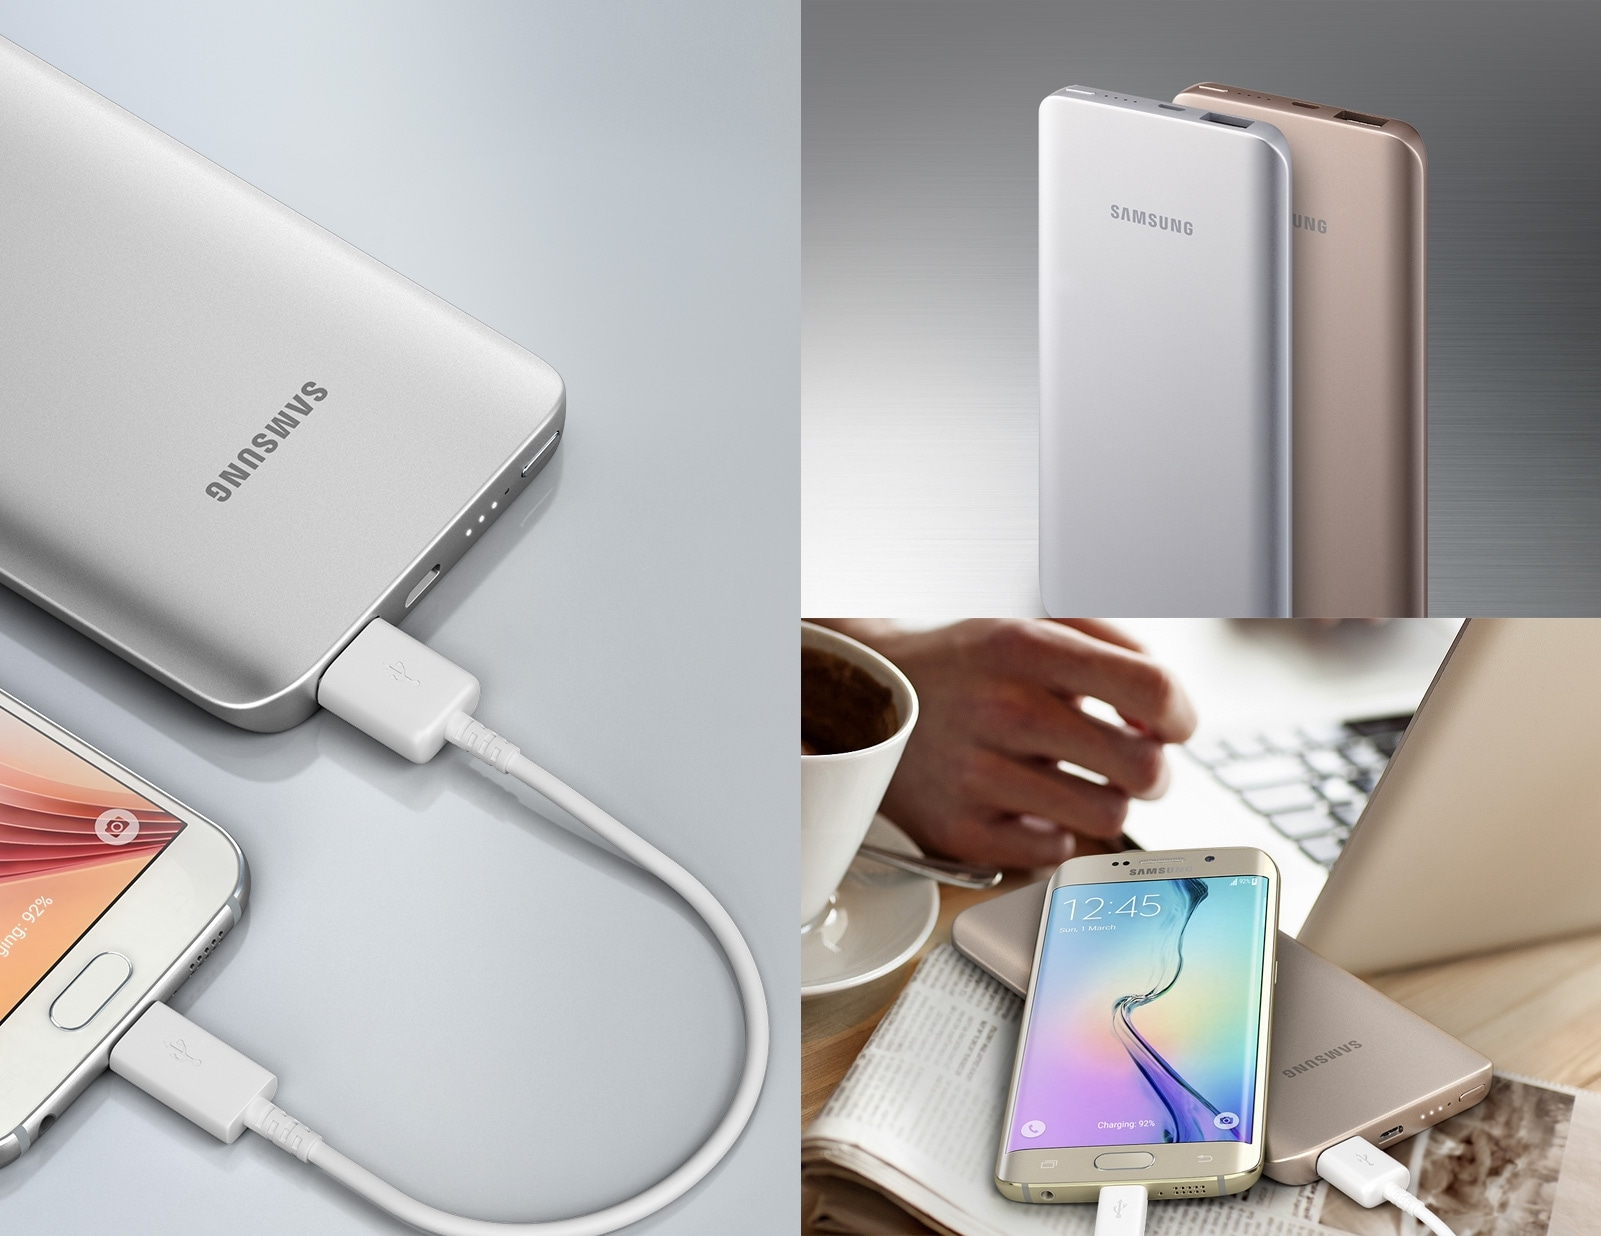 Images of Galaxy S6 and S6 edge accessories